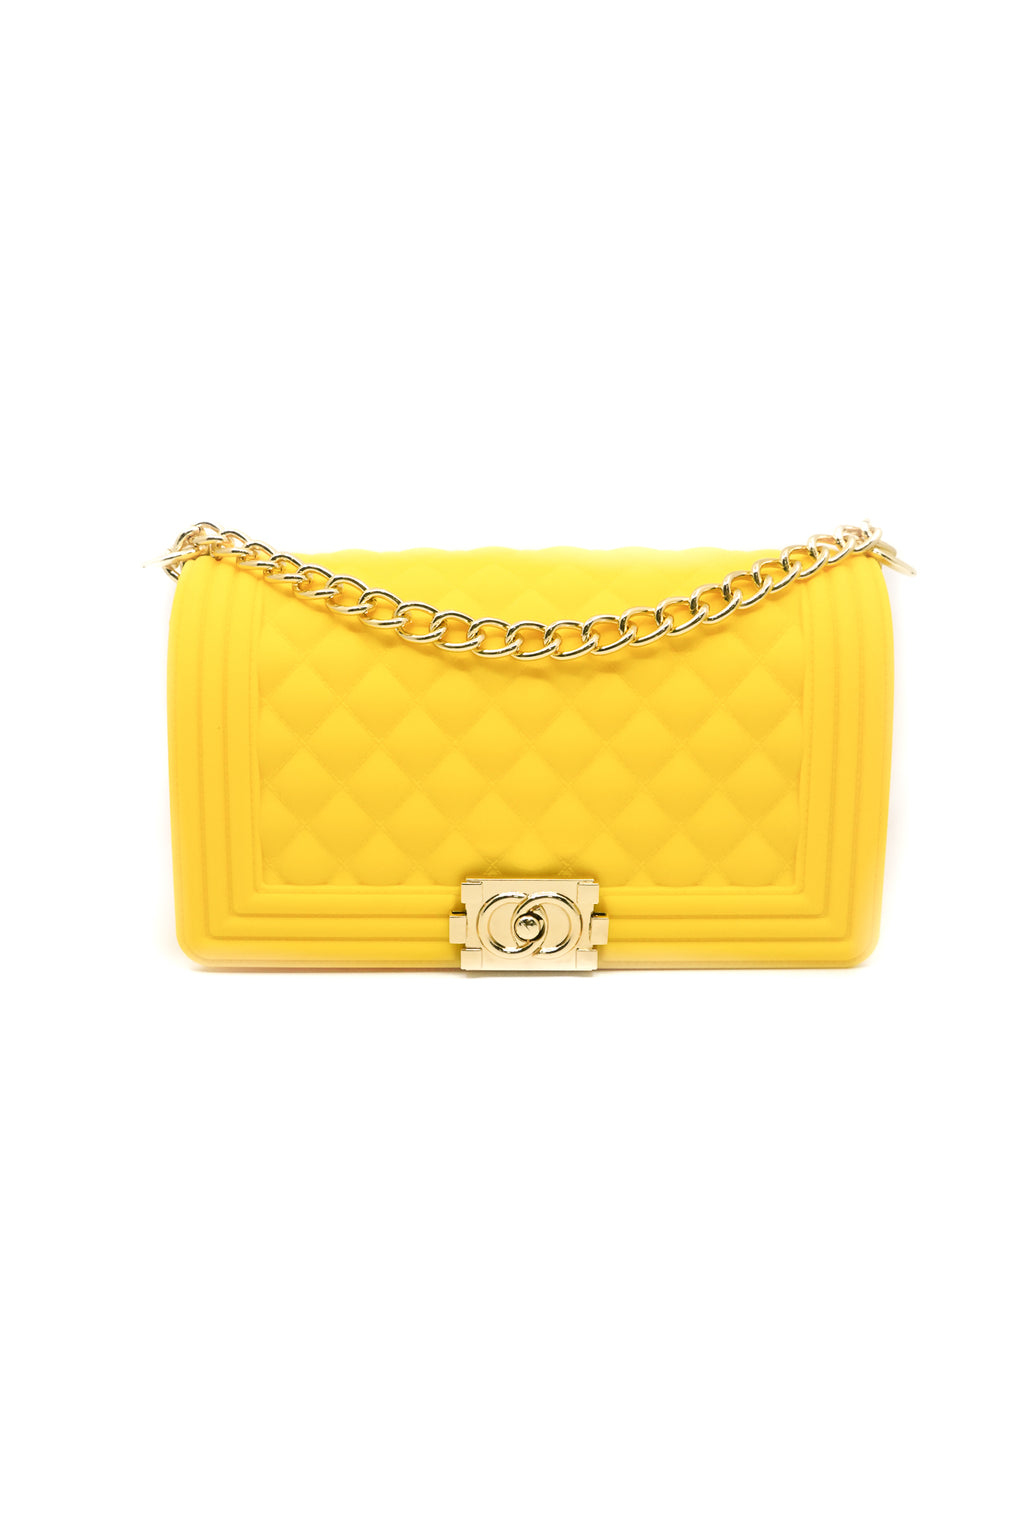 Quilted Crossbody Jelly Bag in Yellow - Fashion House USA